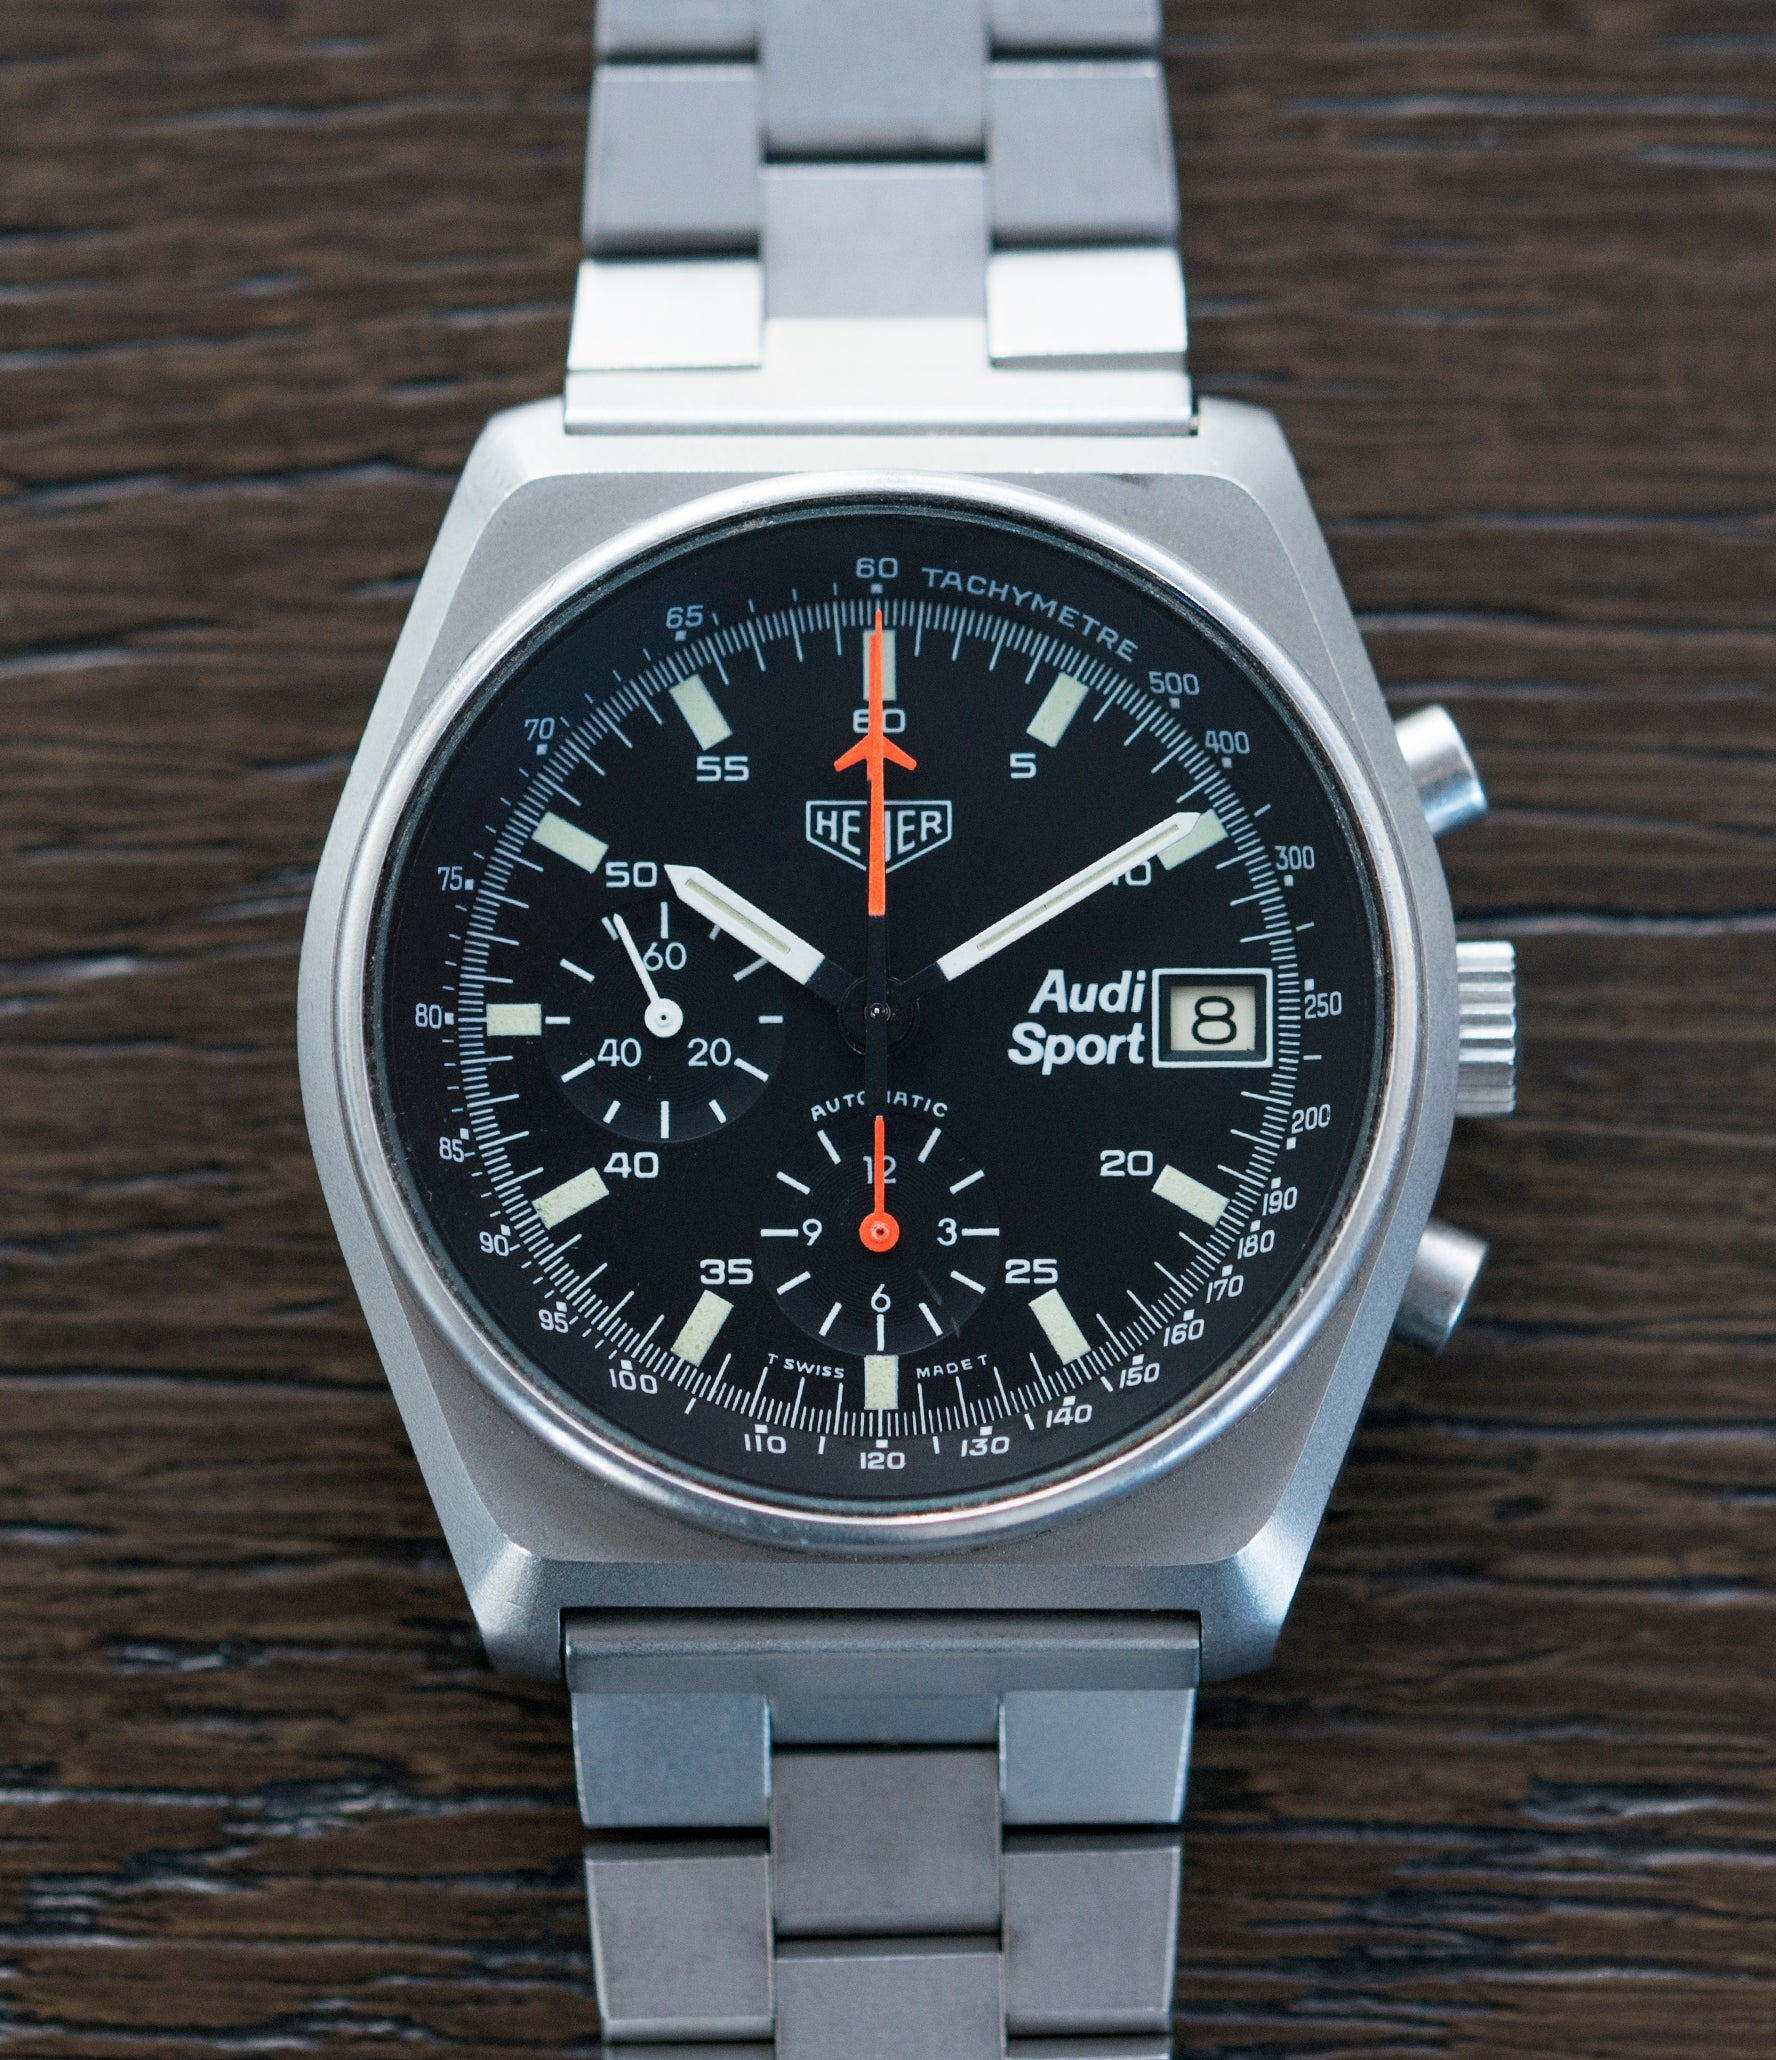 selling Heuer Sport Audi 510.533 vintage steel chronograph watch for sale online at A Collected Man London UK specialist of rare vintage watches